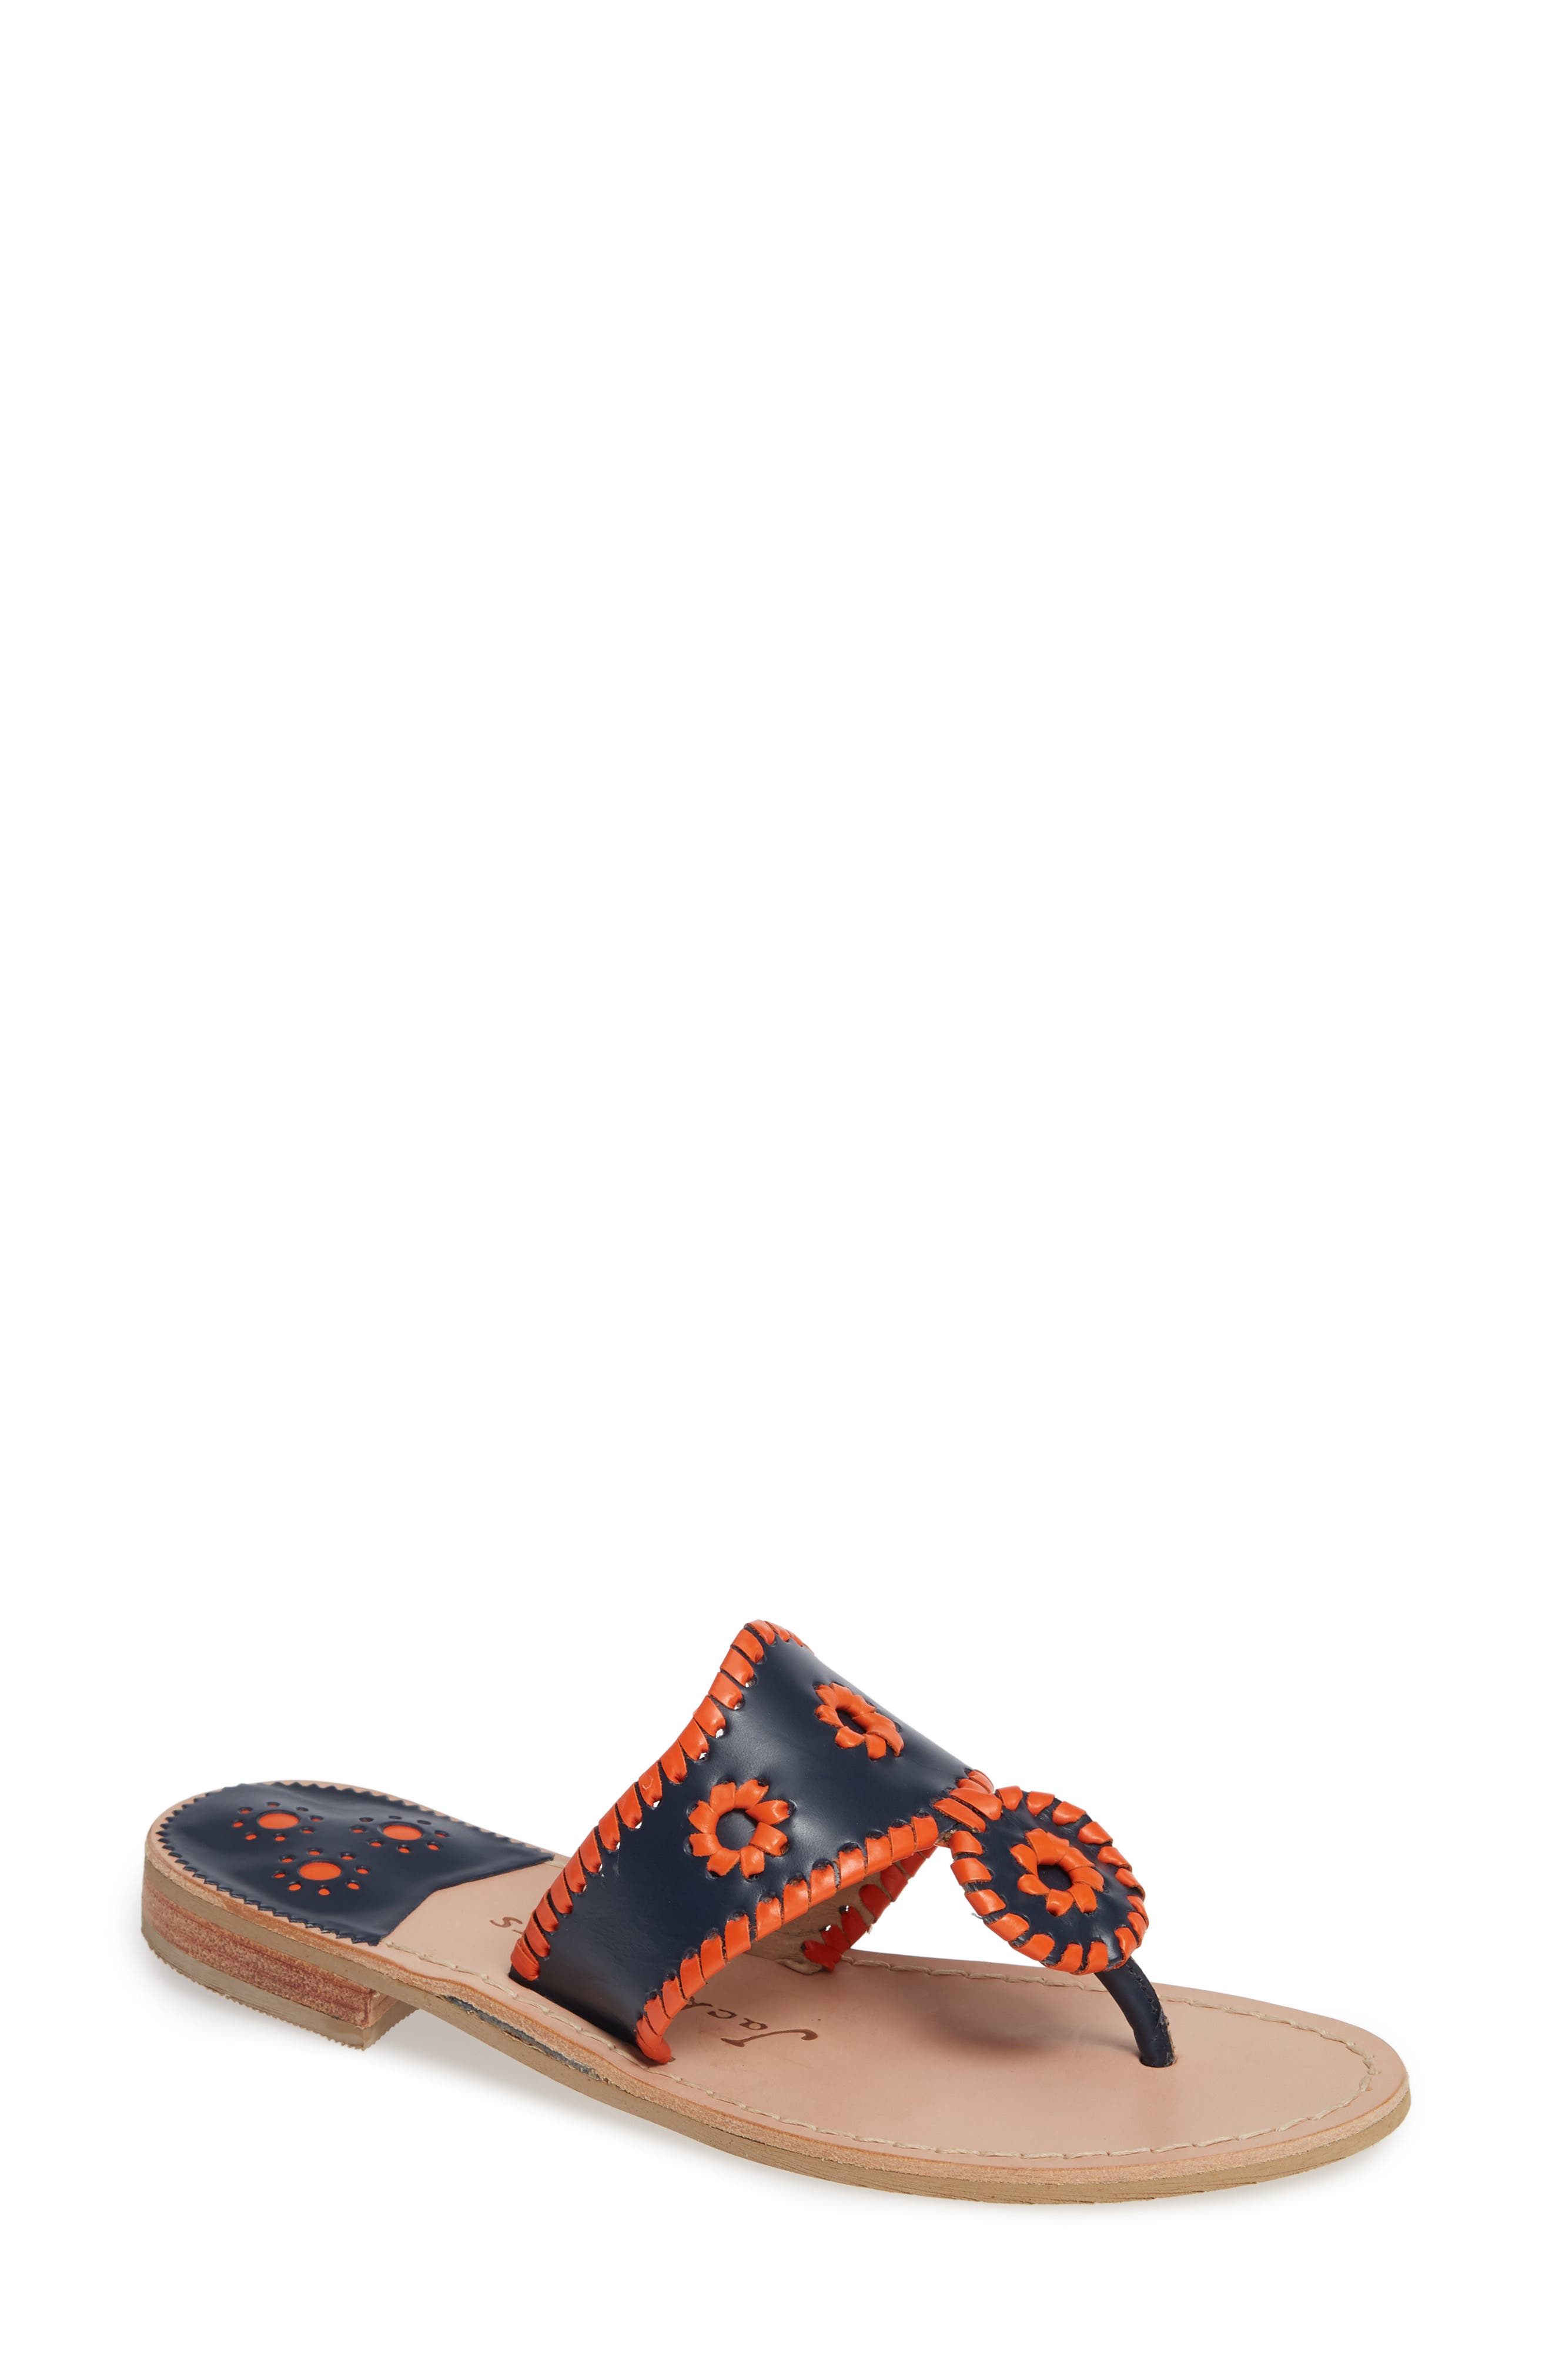 Spirit Sandal,                         Main,                         color, 413